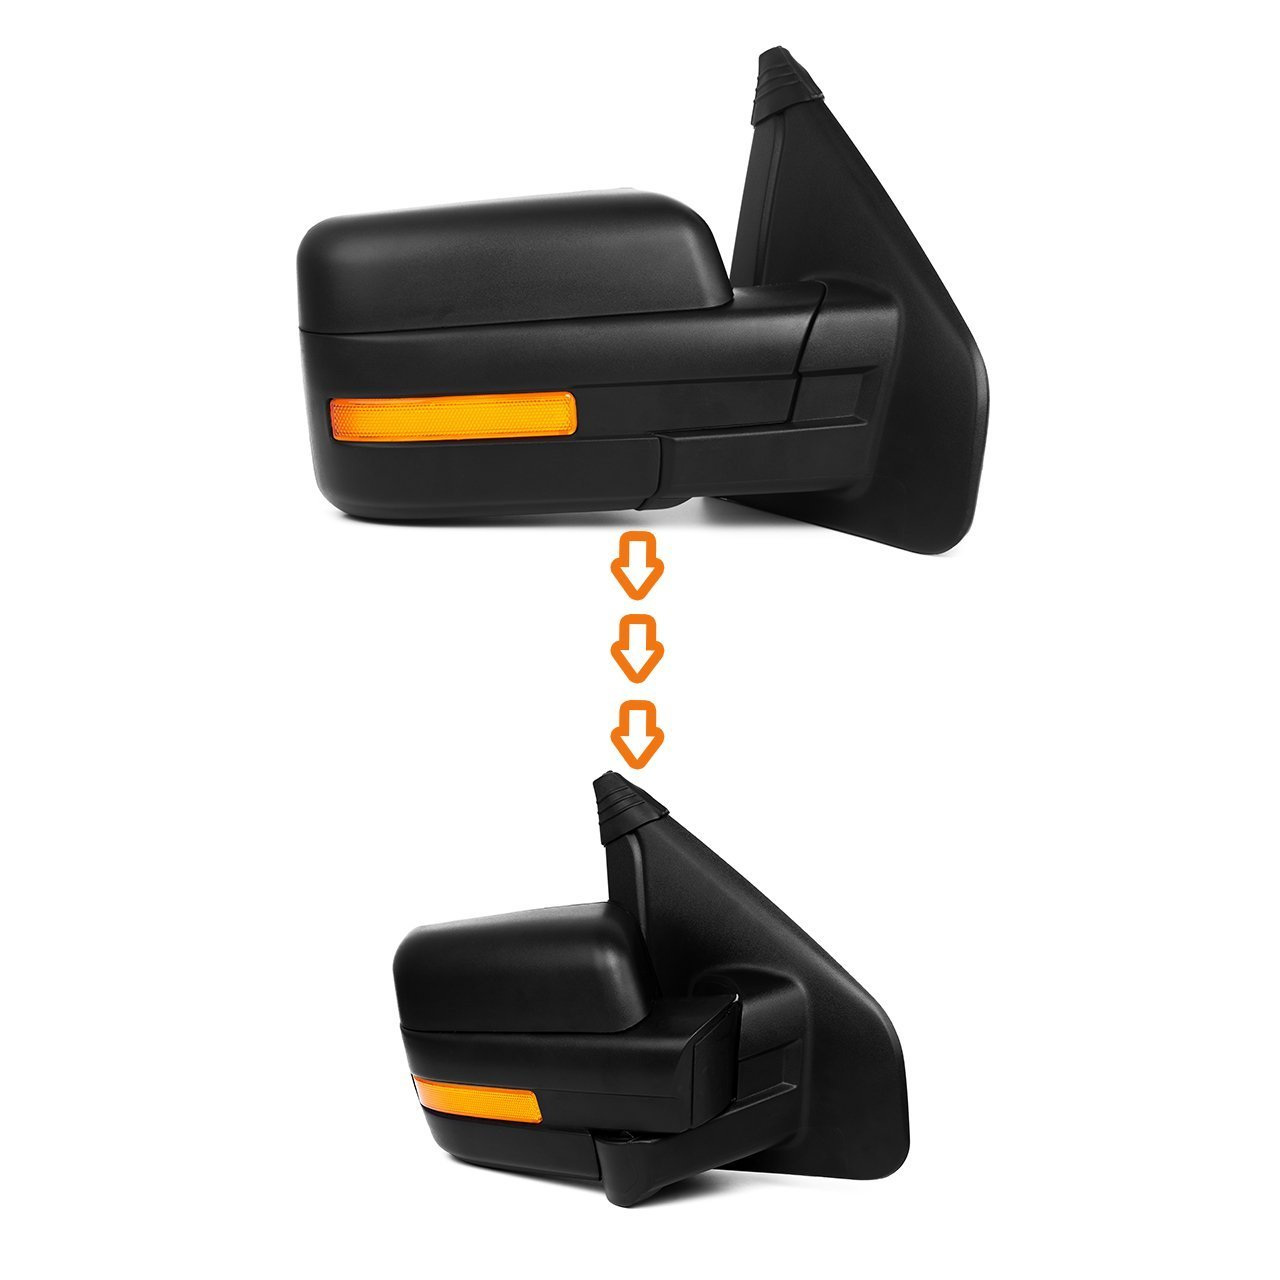 Scitoo Towing Mirrors fit Ford Exterior Accessories Mirrors fit 2007-2014 Ford F-150 Truck with Amber Turn Signal and Puddle Light Heated Power Controlling and Manual Folding Pair 050542-5206-1632183